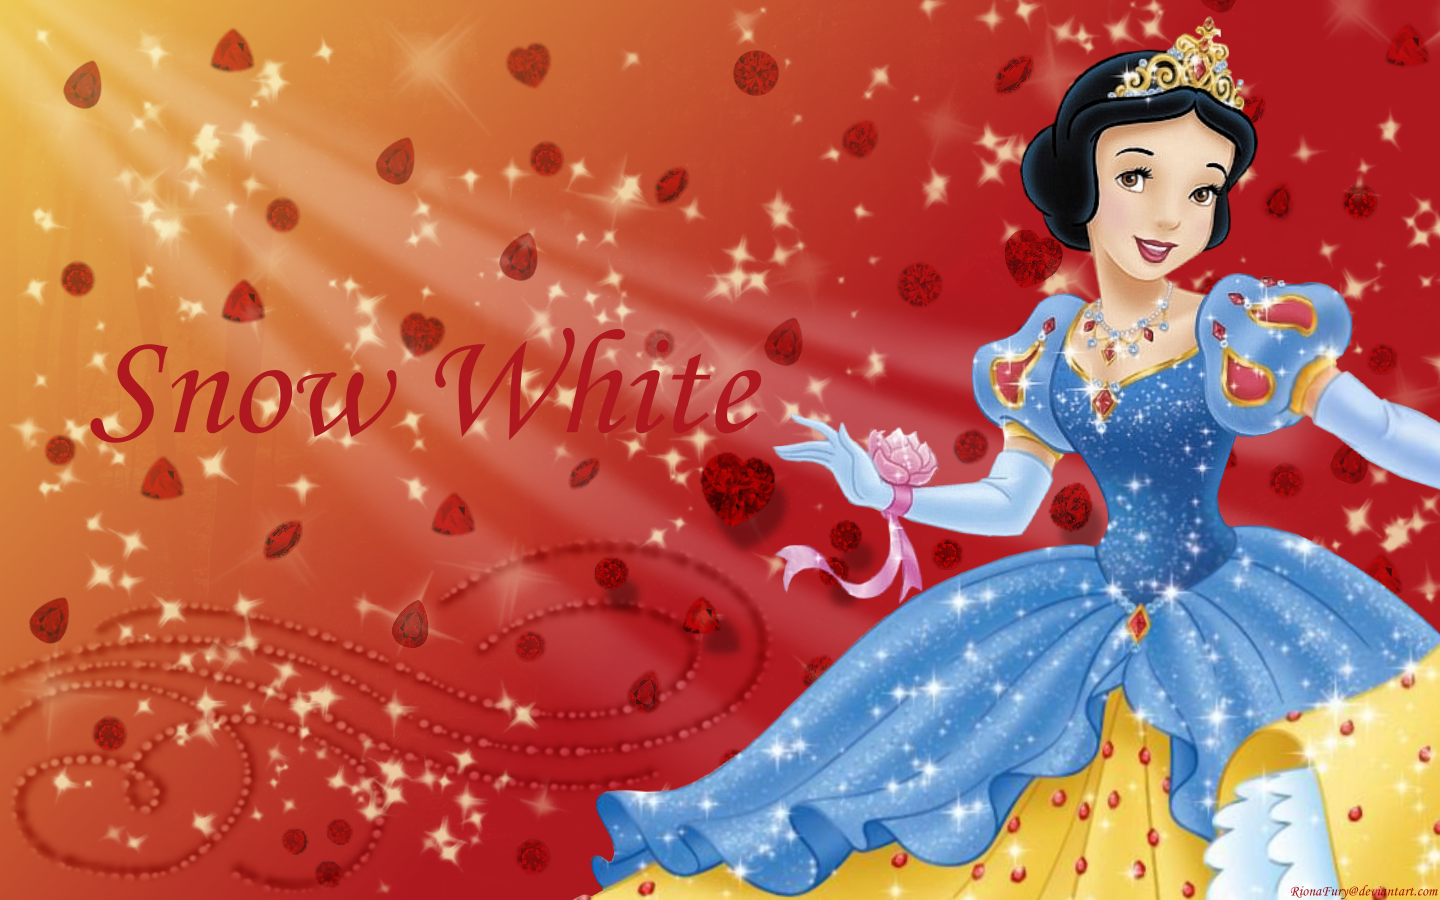 Hair color not hair style poll results disney princess fanpop - Snow White Snow White And The Seven Dwarfs Wallpaper 24172998 Fanpop Fanclubs